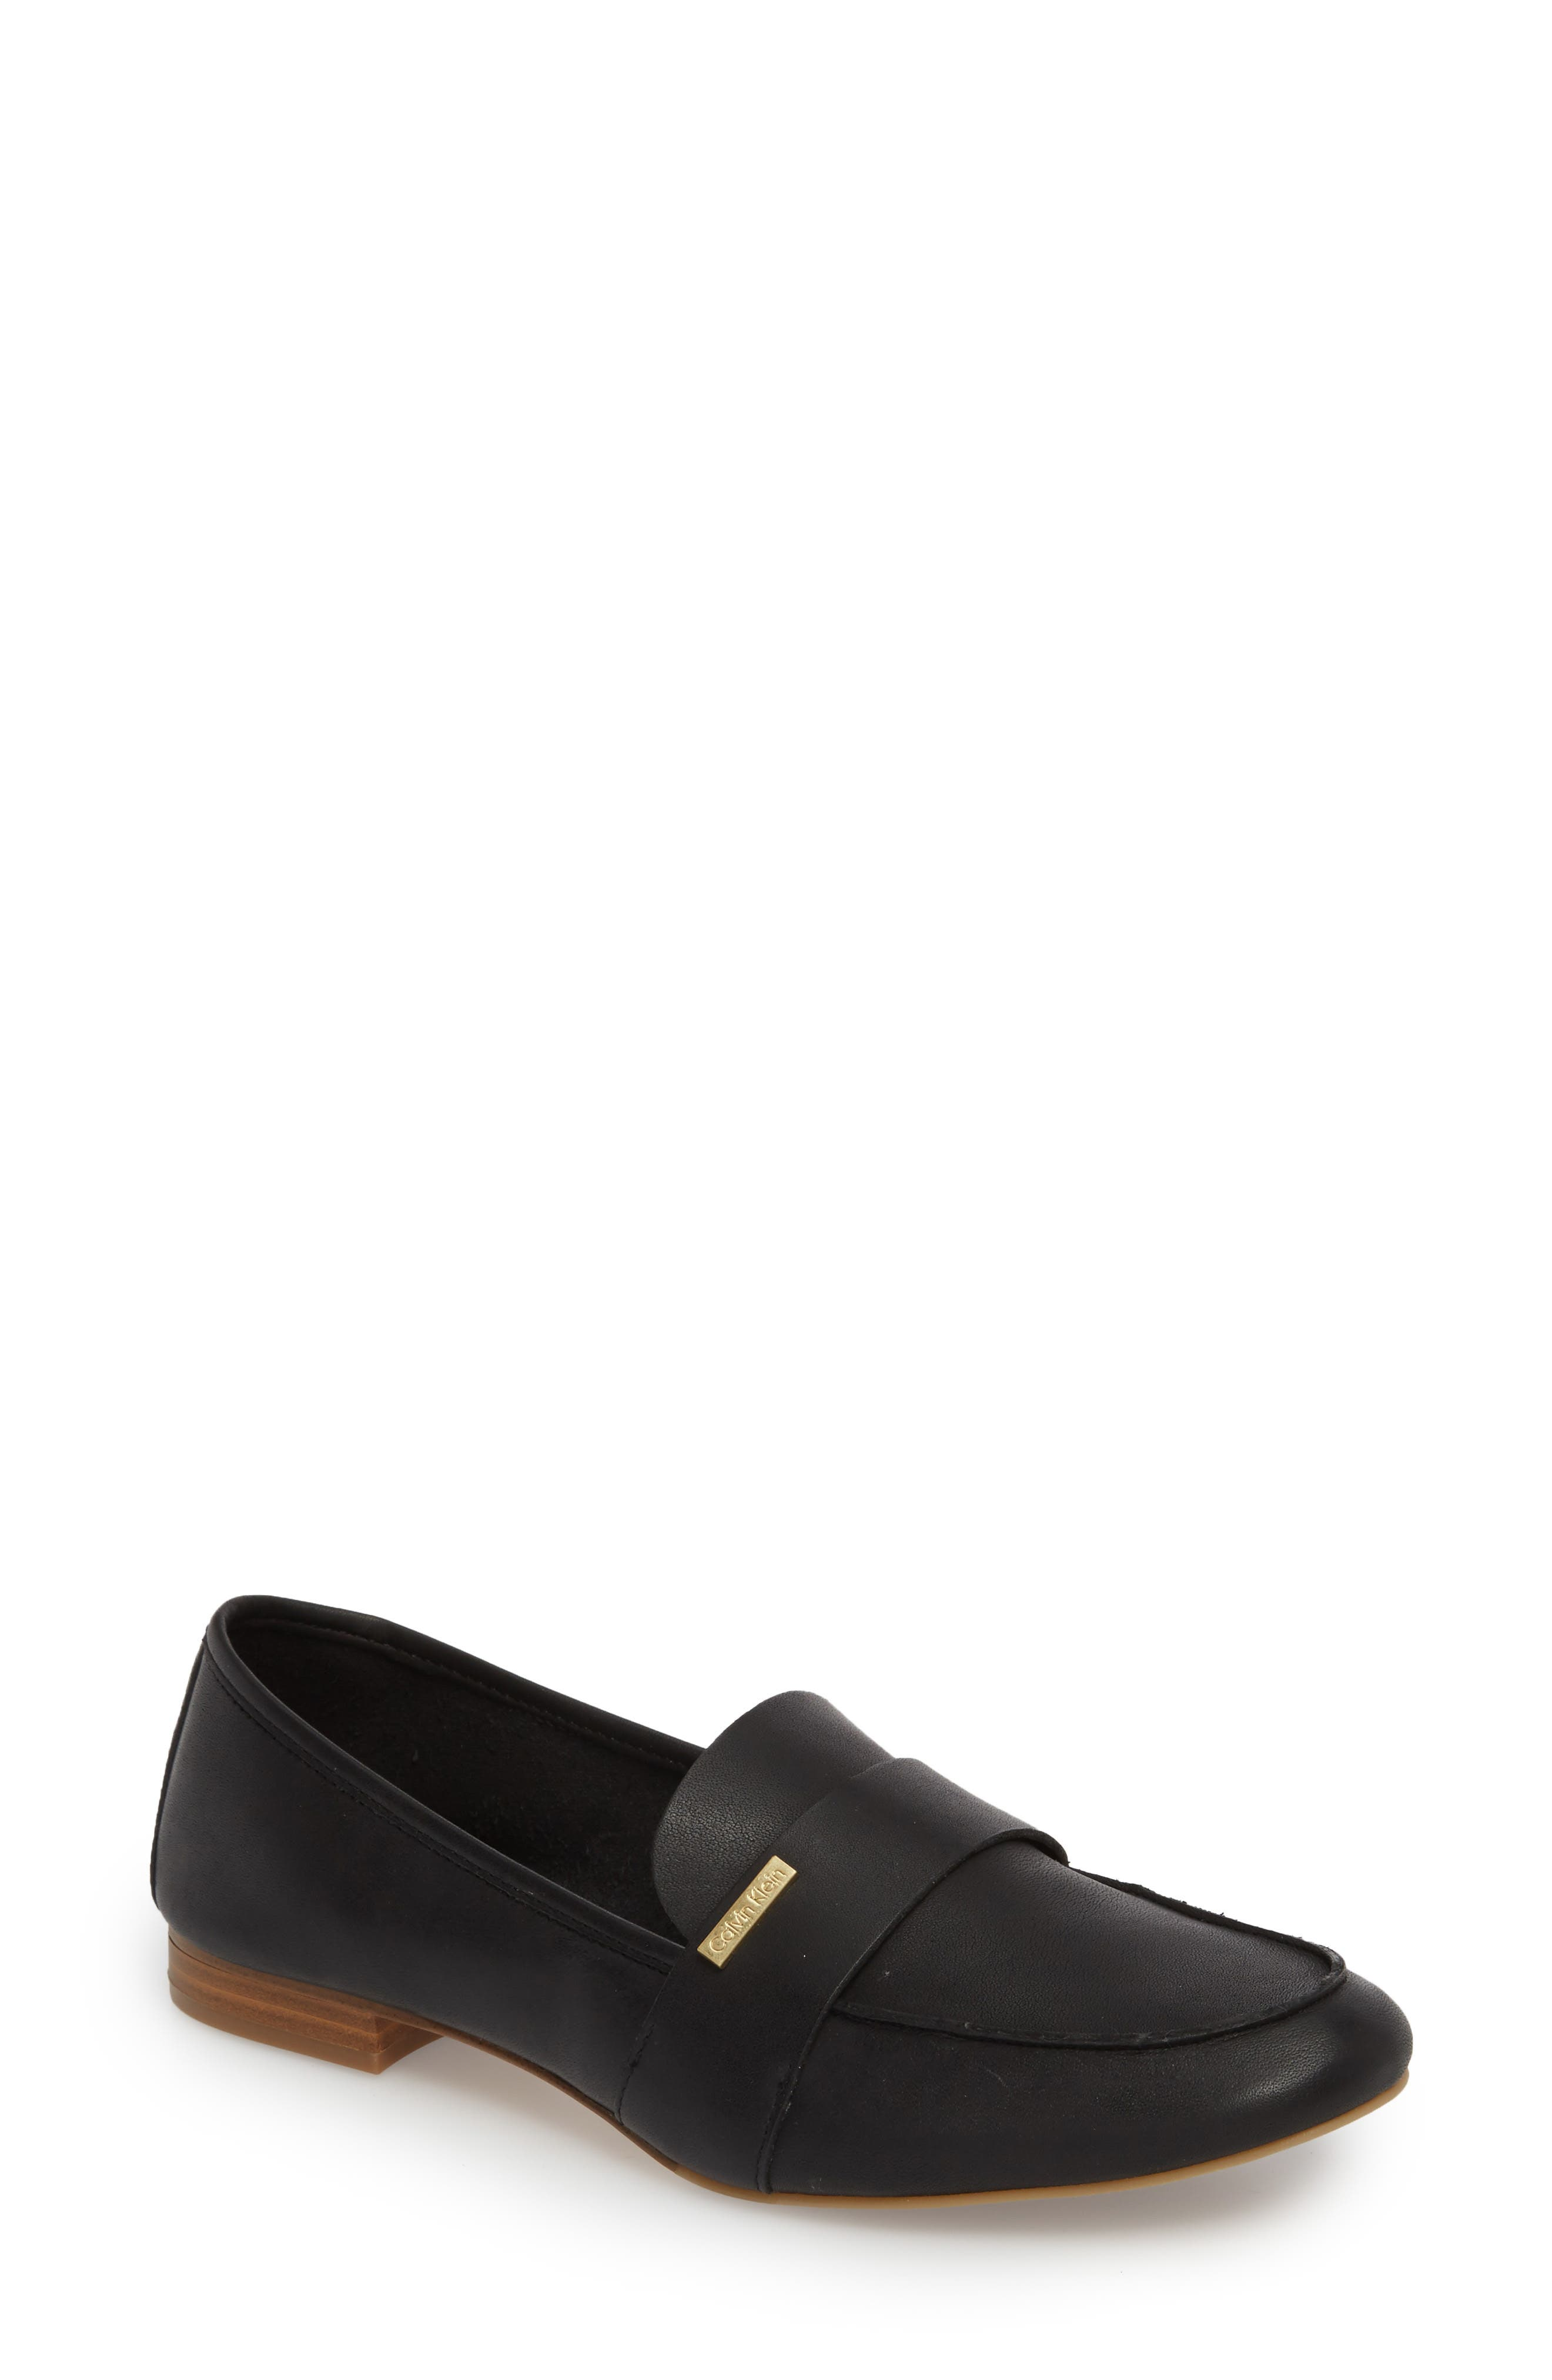 CALVIN KLEIN,                             Cemmie Loafer,                             Main thumbnail 1, color,                             001